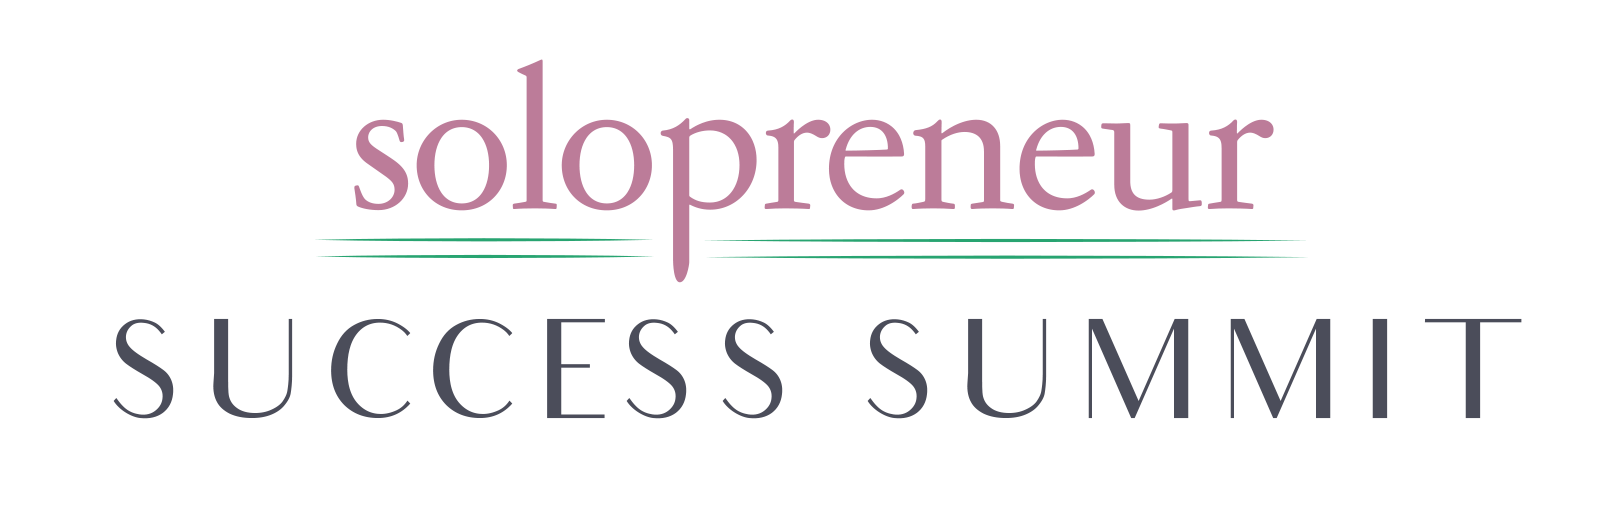 Solopreneur Success Summit